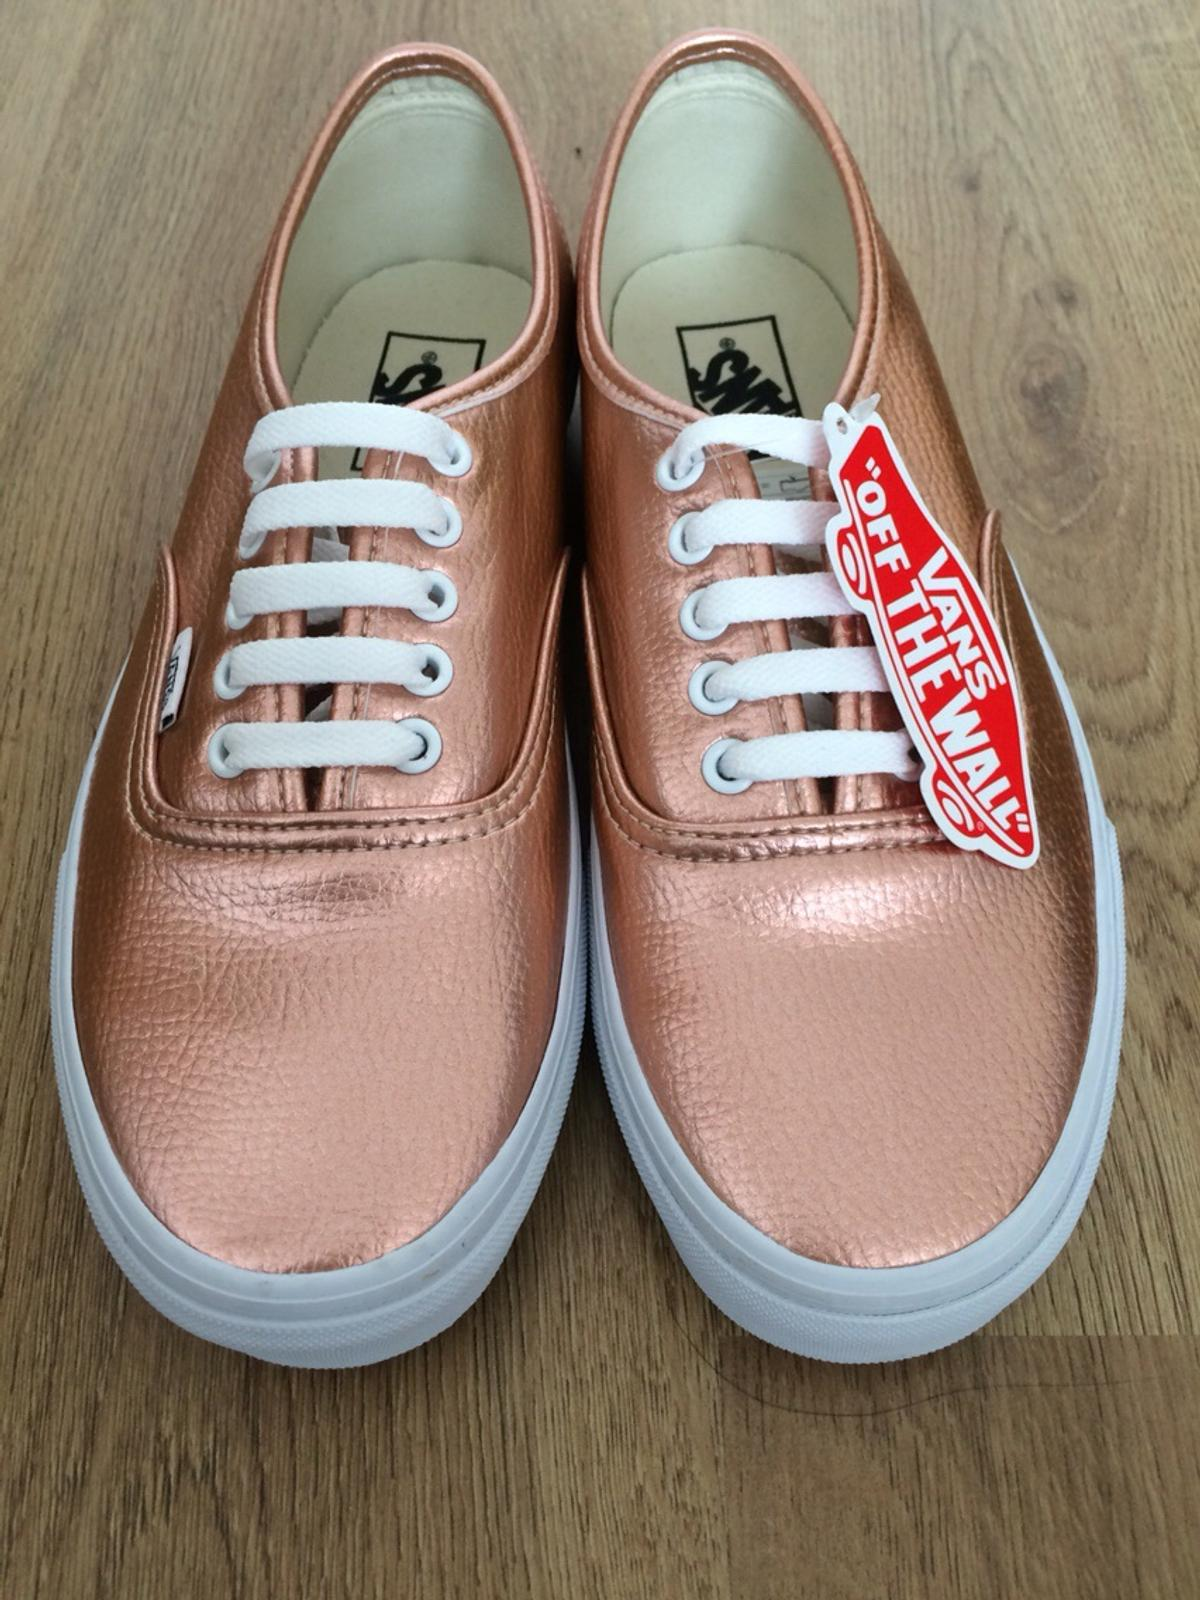 277f0ab48f1 VANS AUTHENTIC Rose Gold Leather SIZE 8 UK in SE1 London for £35.00 ...